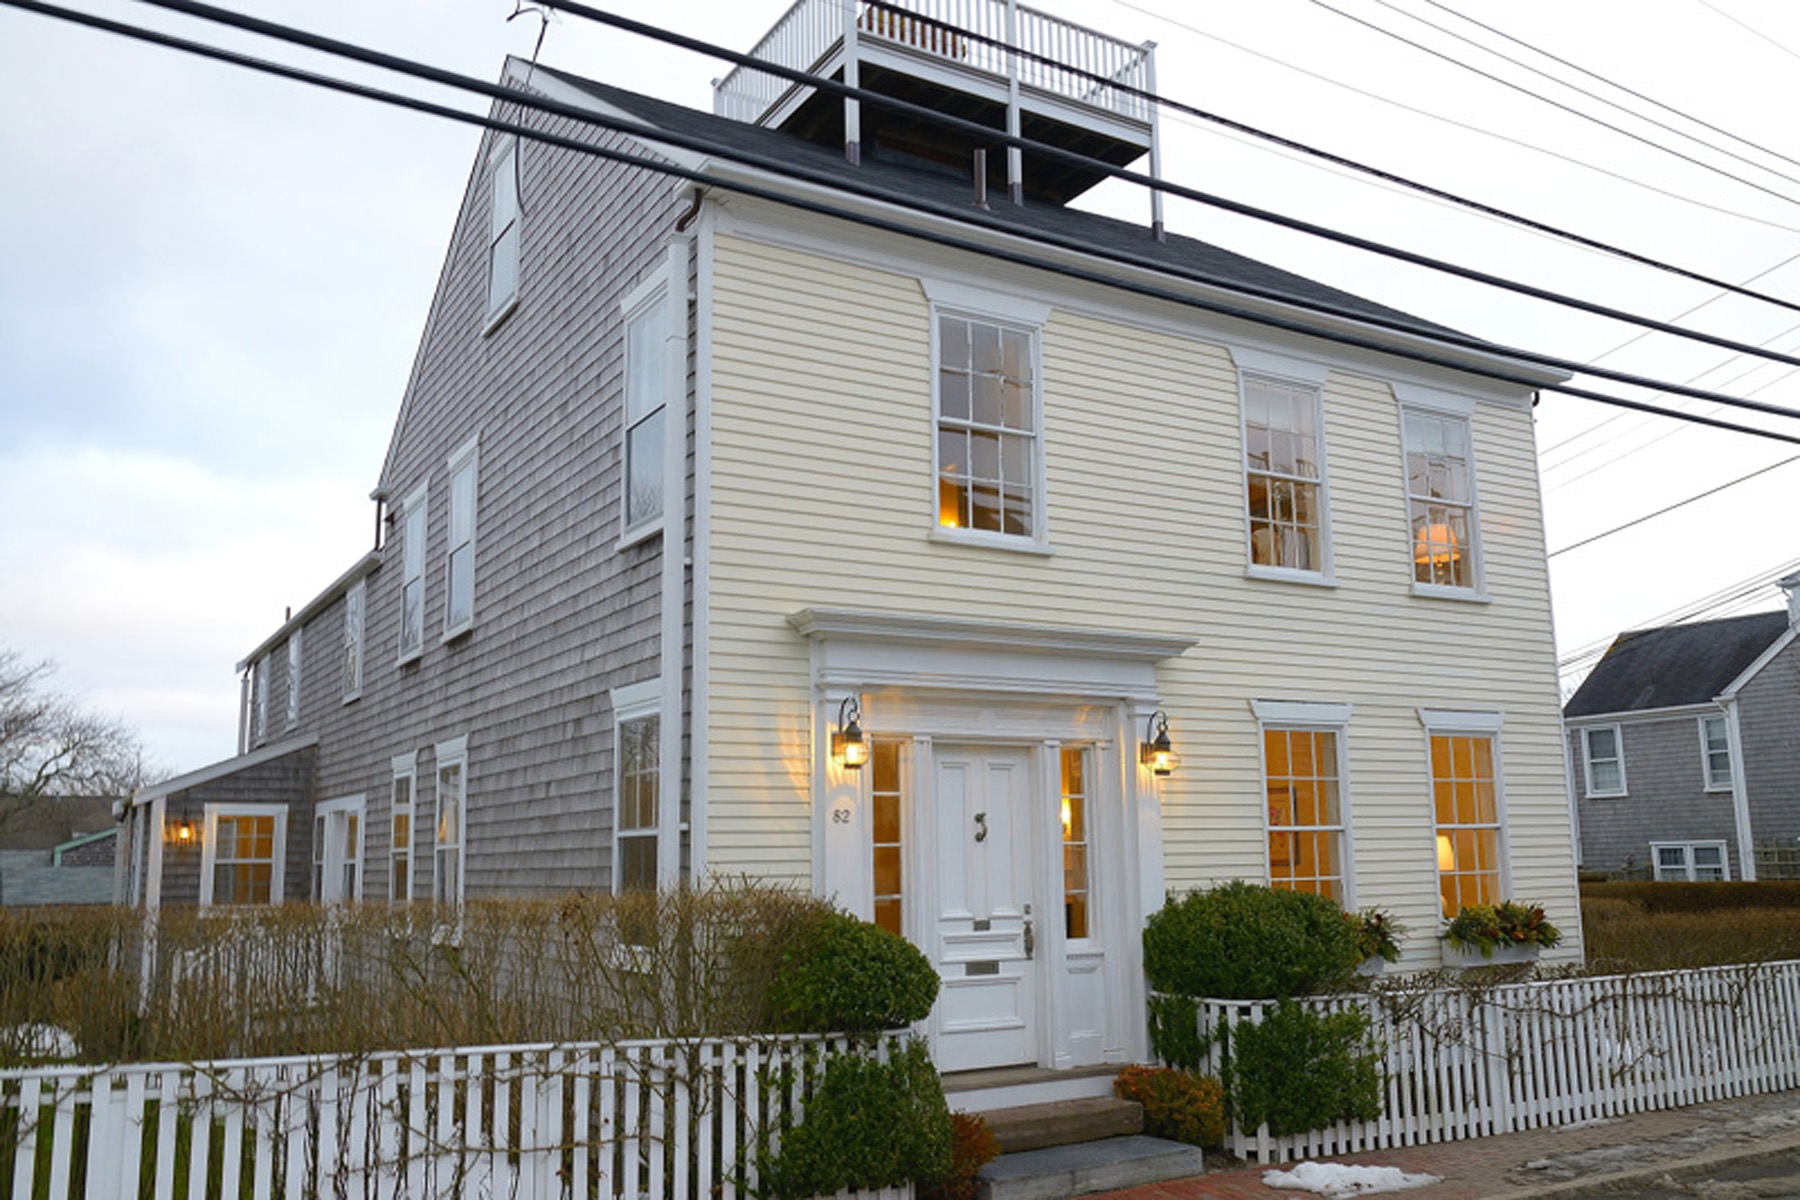 Single Family Home for Sale at In Town Antique 82 Orange Street Nantucket, Massachusetts 02554 United States